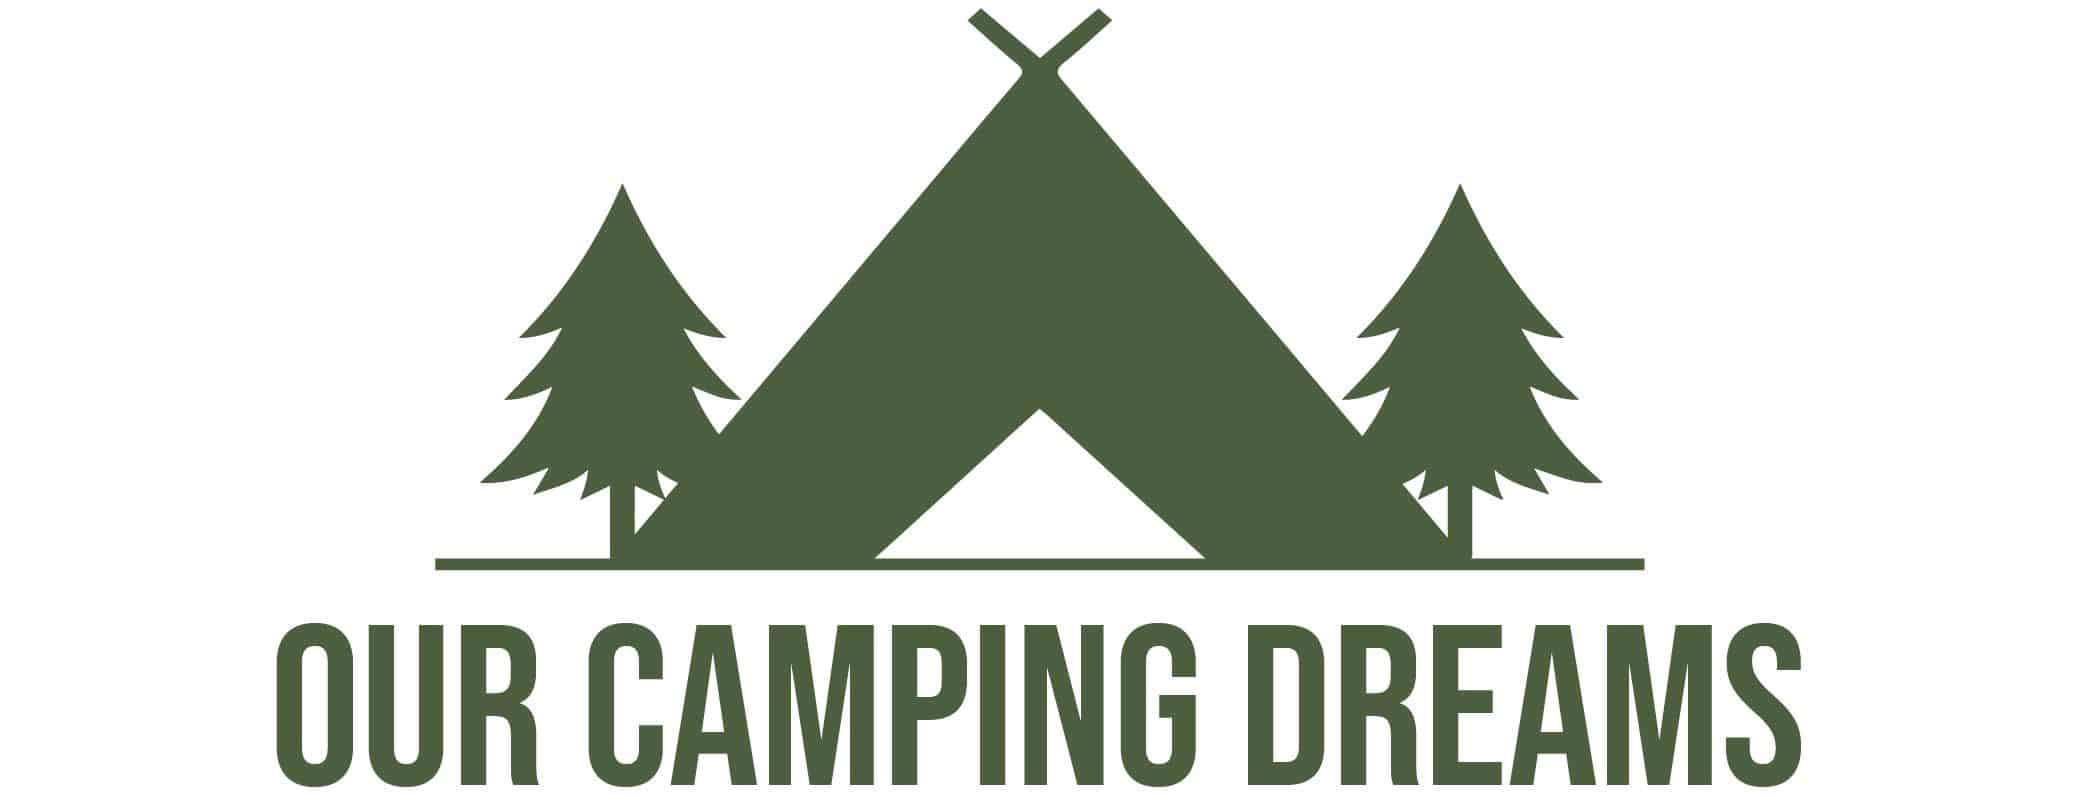 Our Camping Dreams